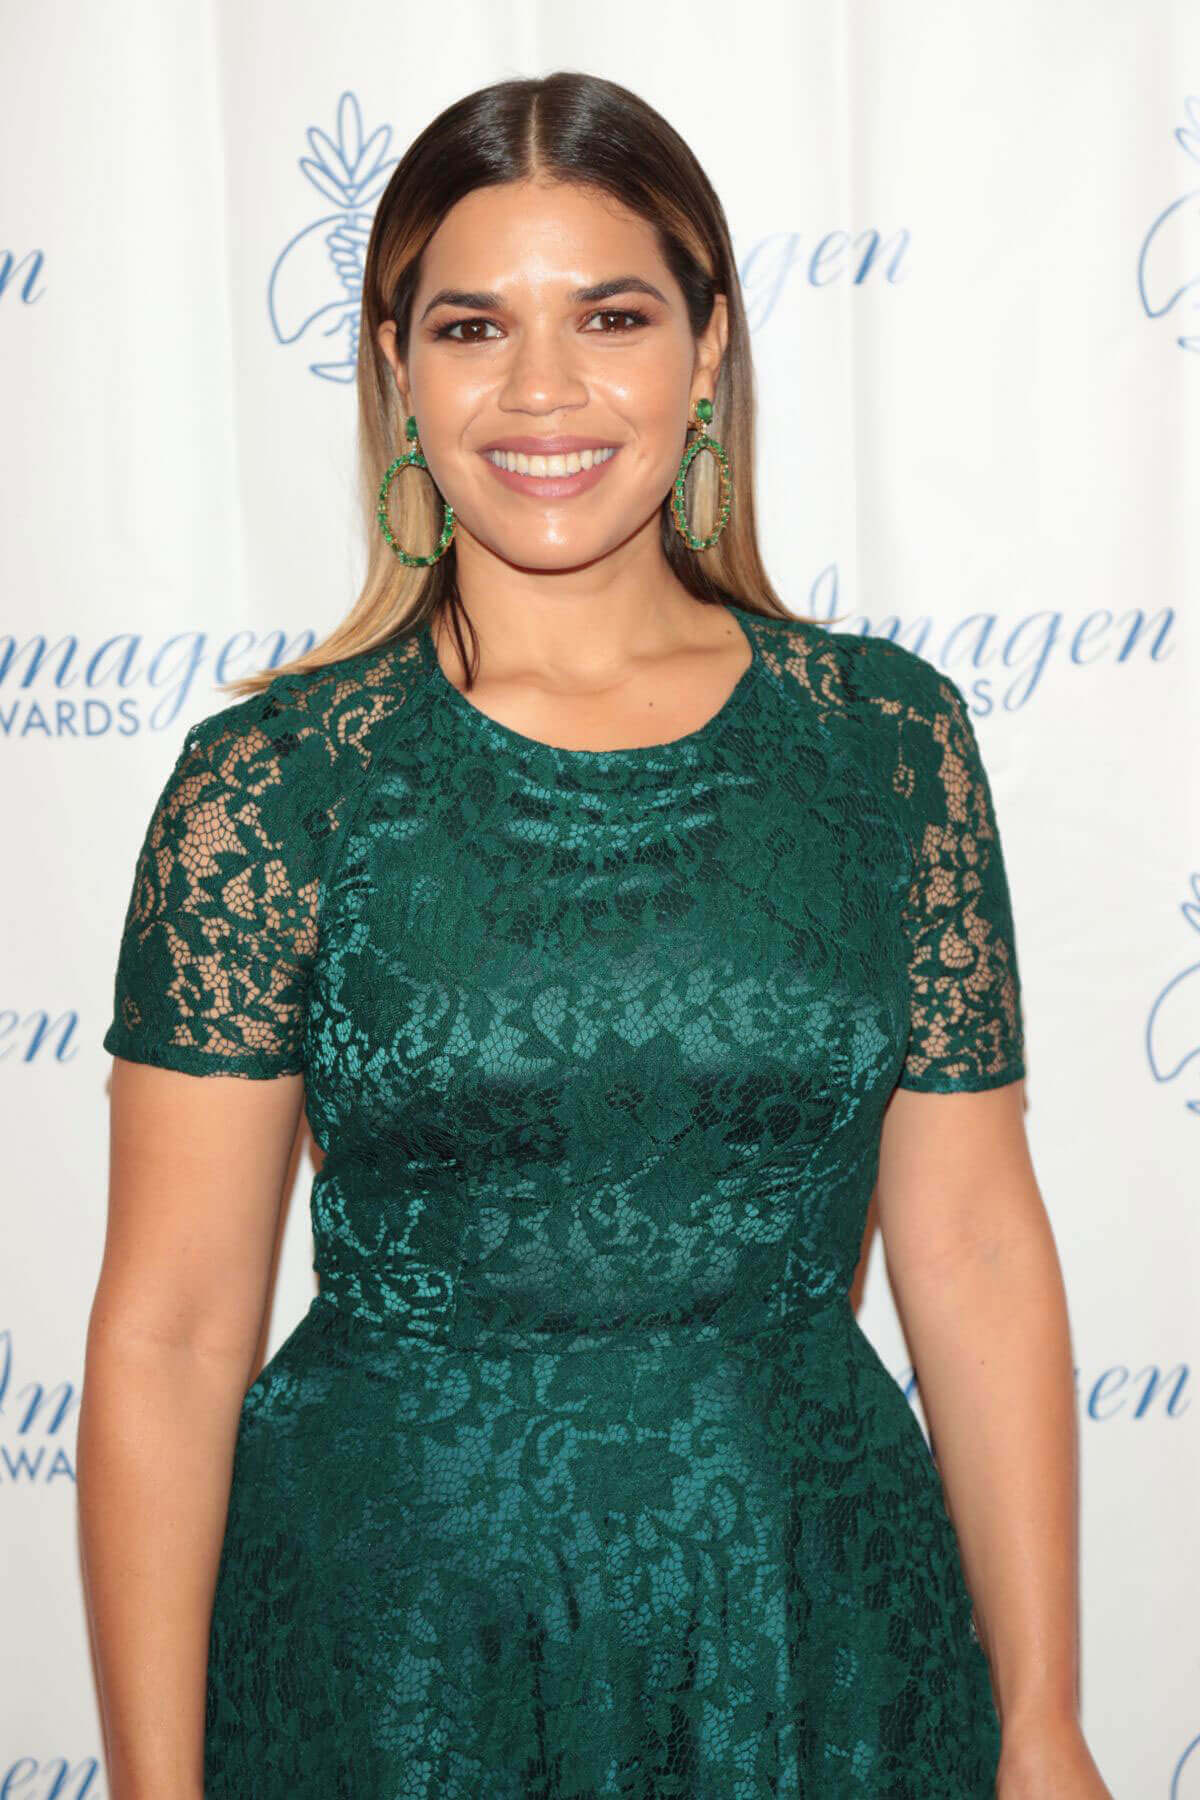 America Ferrera at 32nd Annual Imagen Awards 2017 in Los Angeles